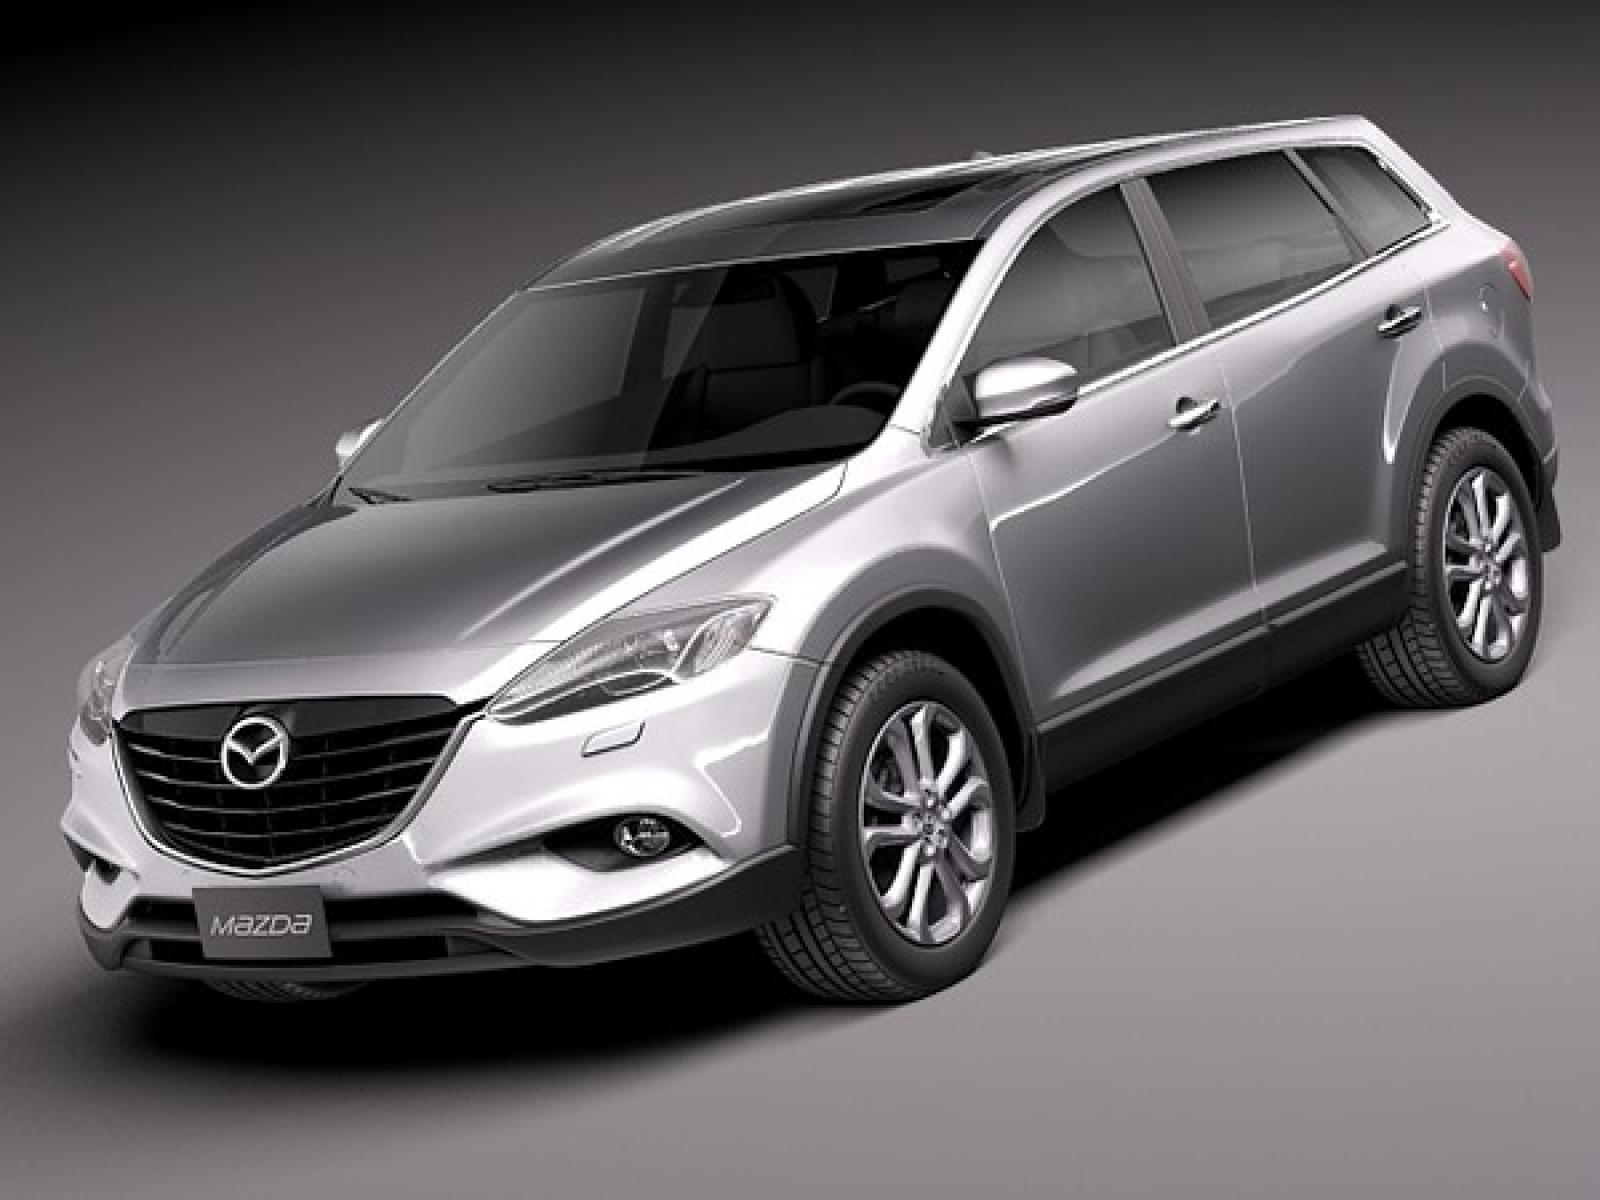 2015 mazda cx 9 information and photos zombiedrive. Black Bedroom Furniture Sets. Home Design Ideas